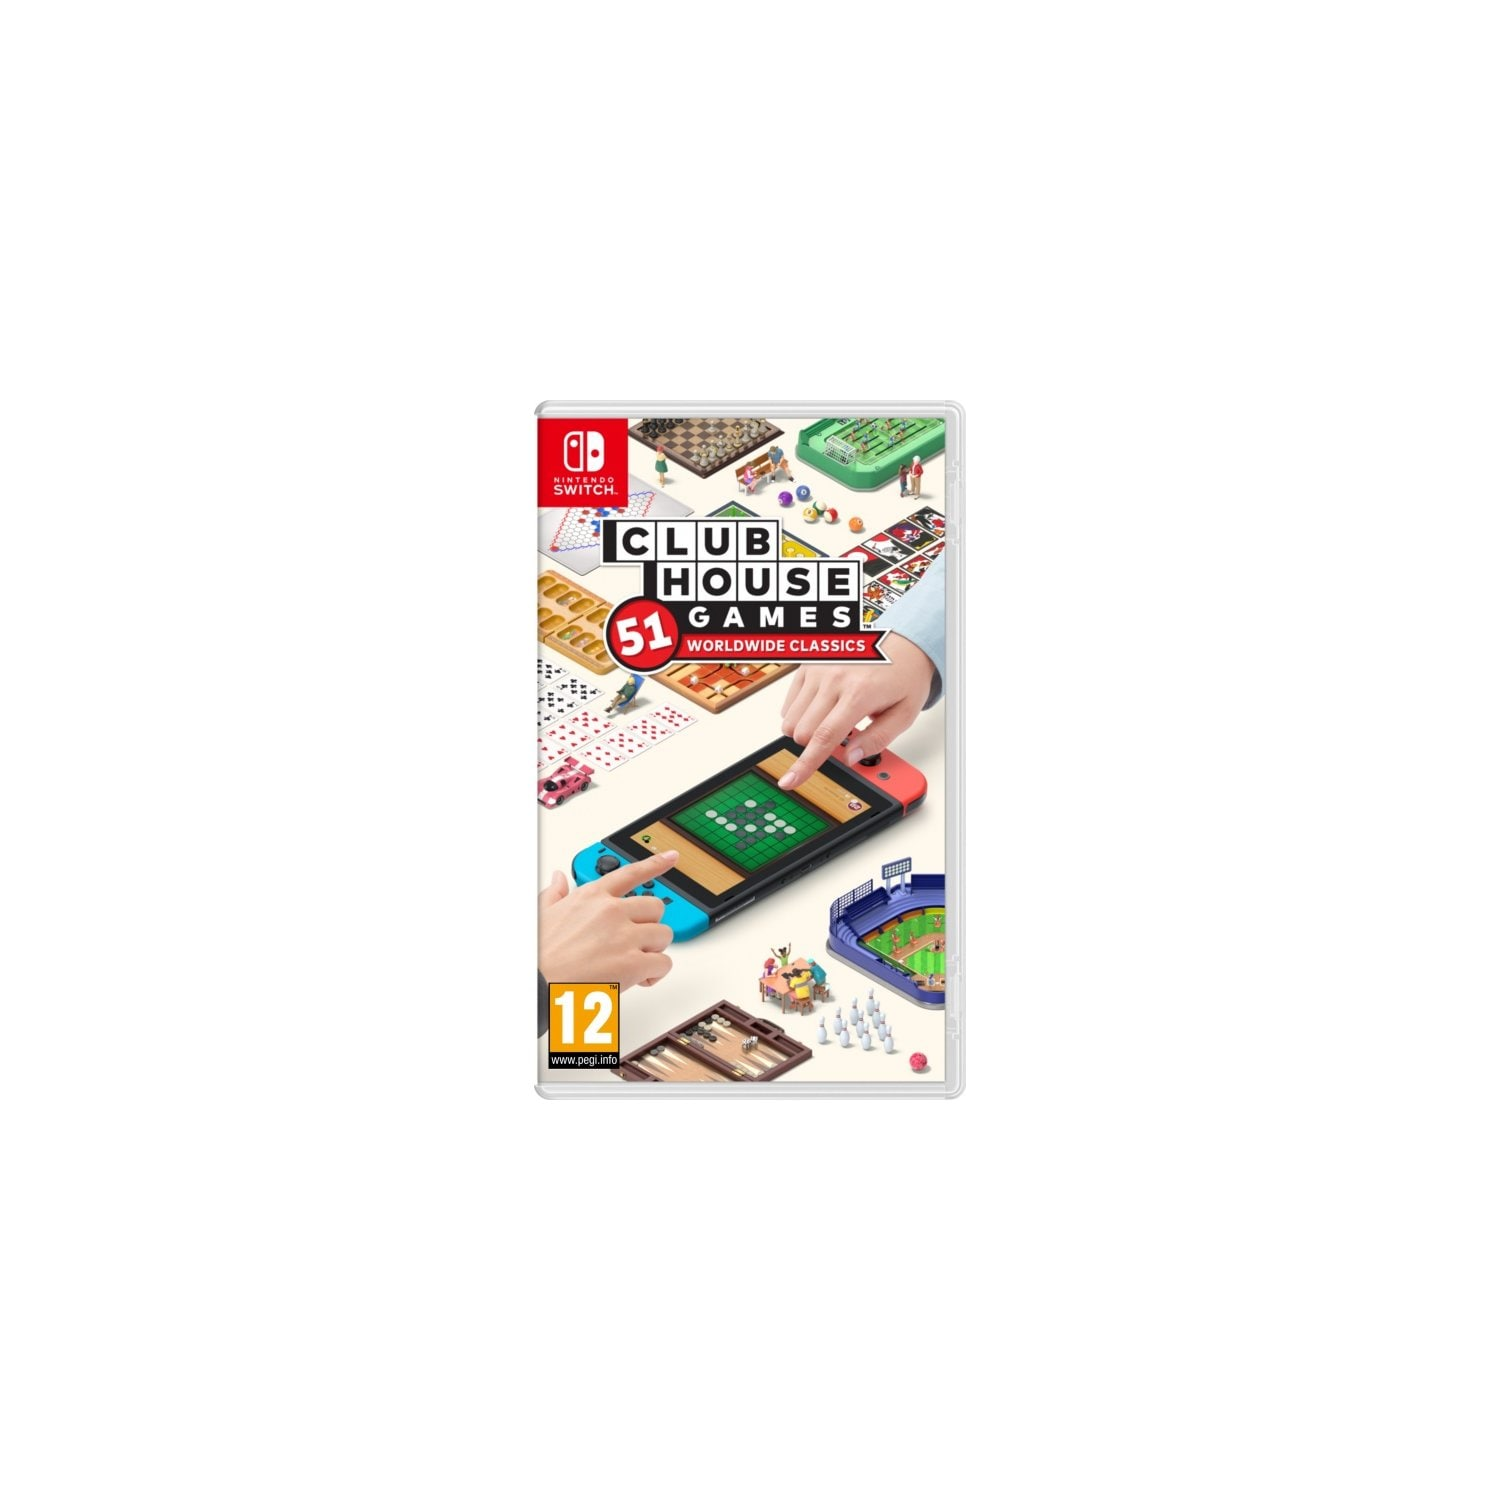 Gra Nintendo Switch Clubhouse Games: 51 Worldwide Classic